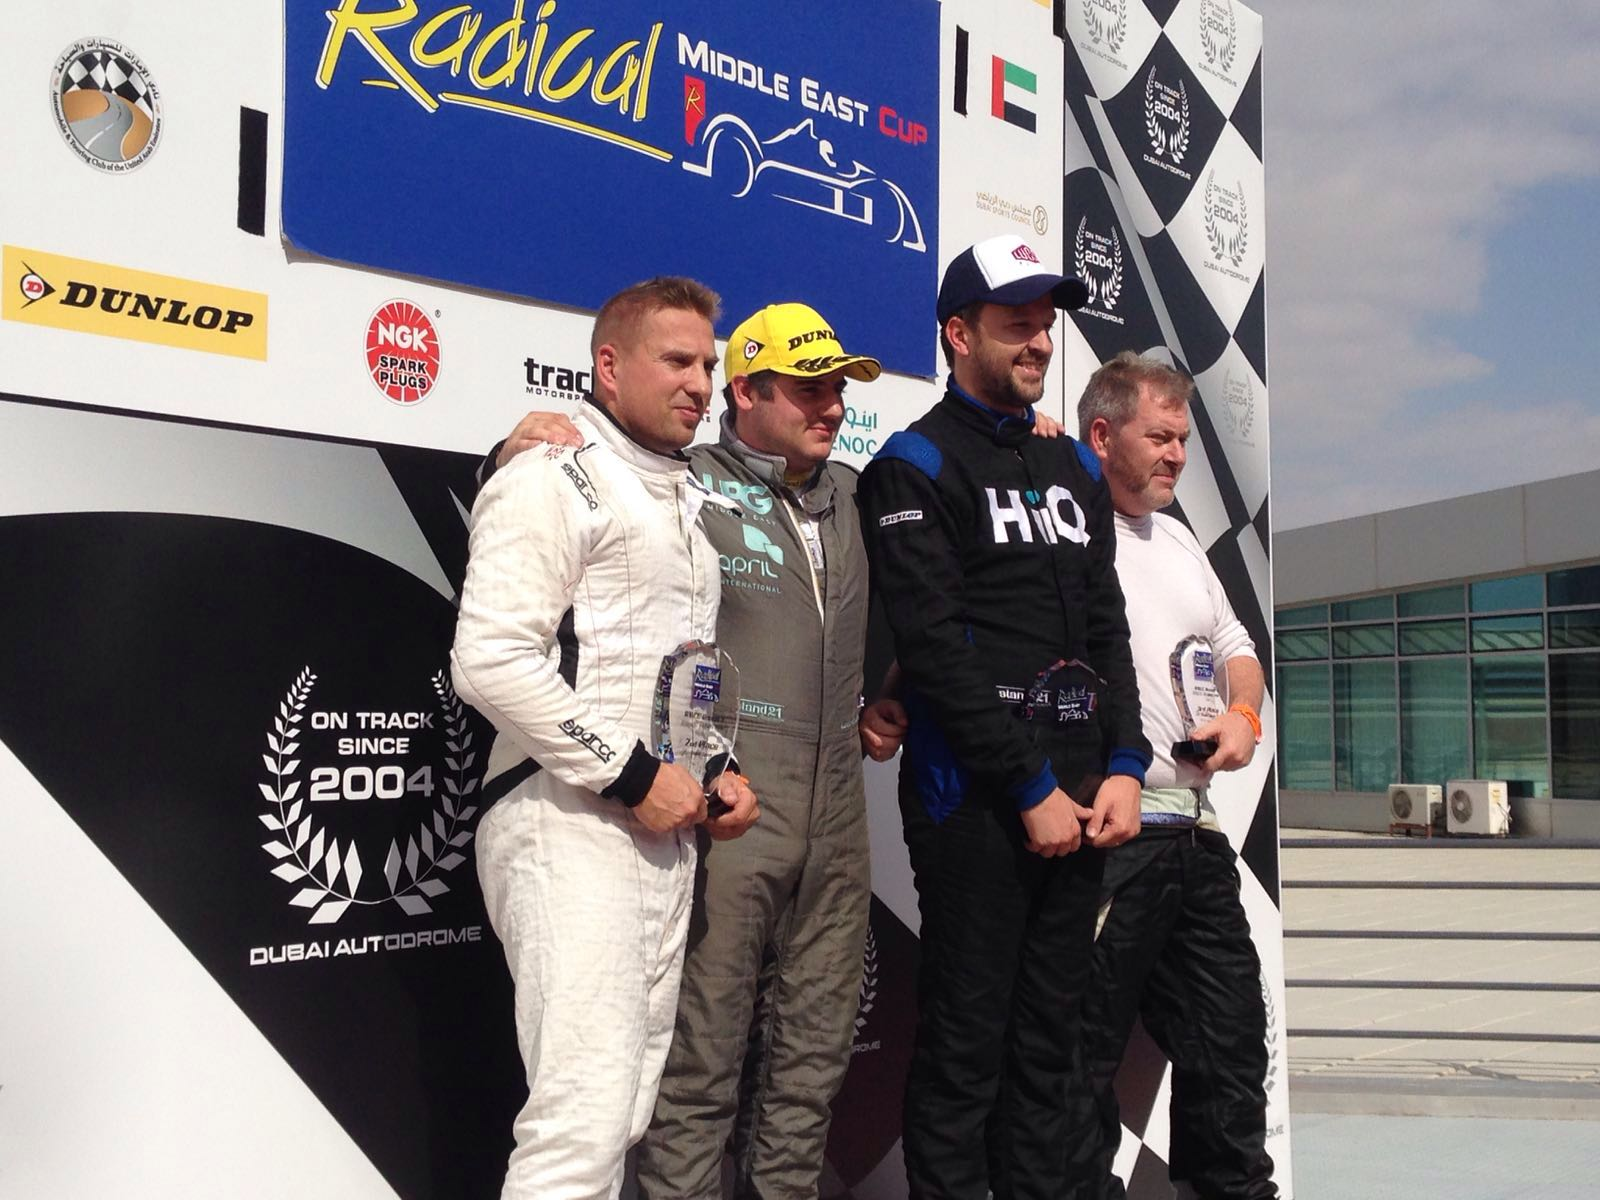 Lucco Racing Team_Ludovic Loffreda (2nd from left) and Romain Lutter (3rd from left).jpg